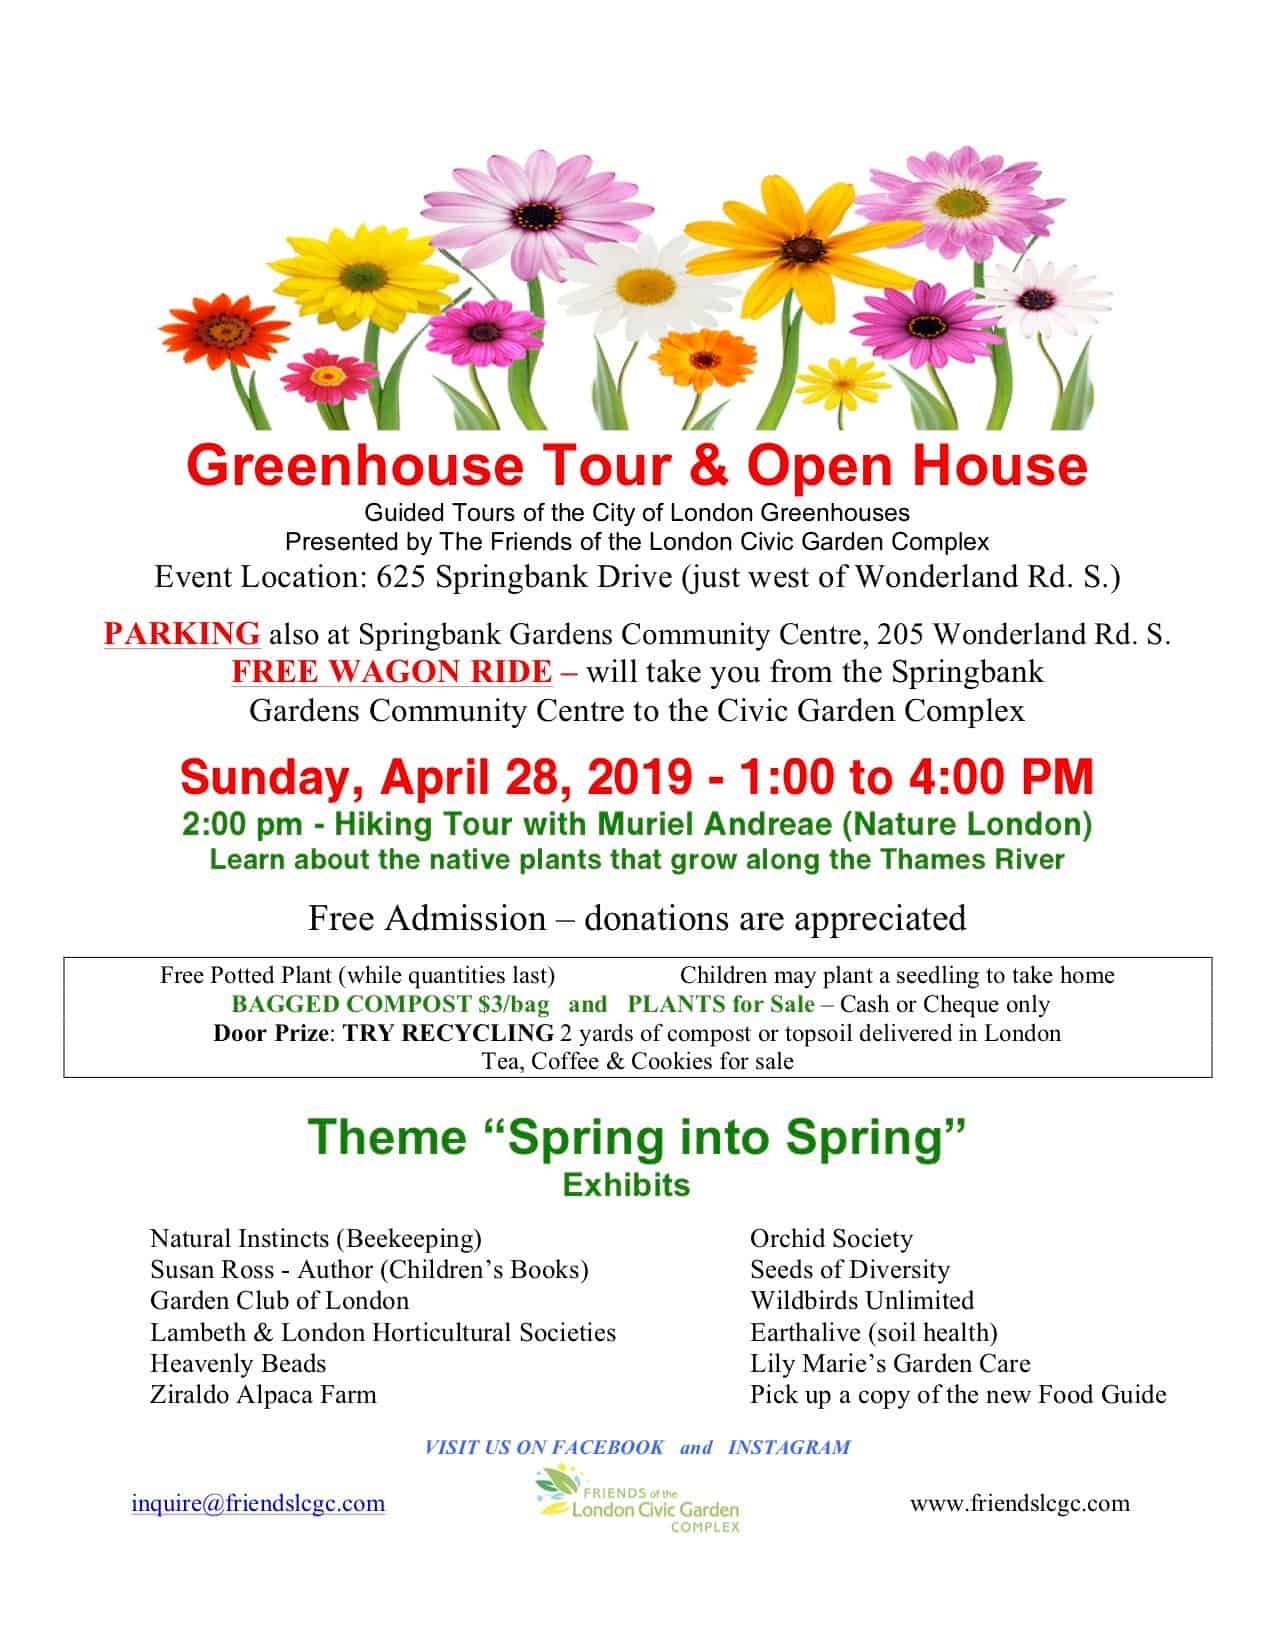 'Spring Into Spring' Greenhouse Tour & Open House